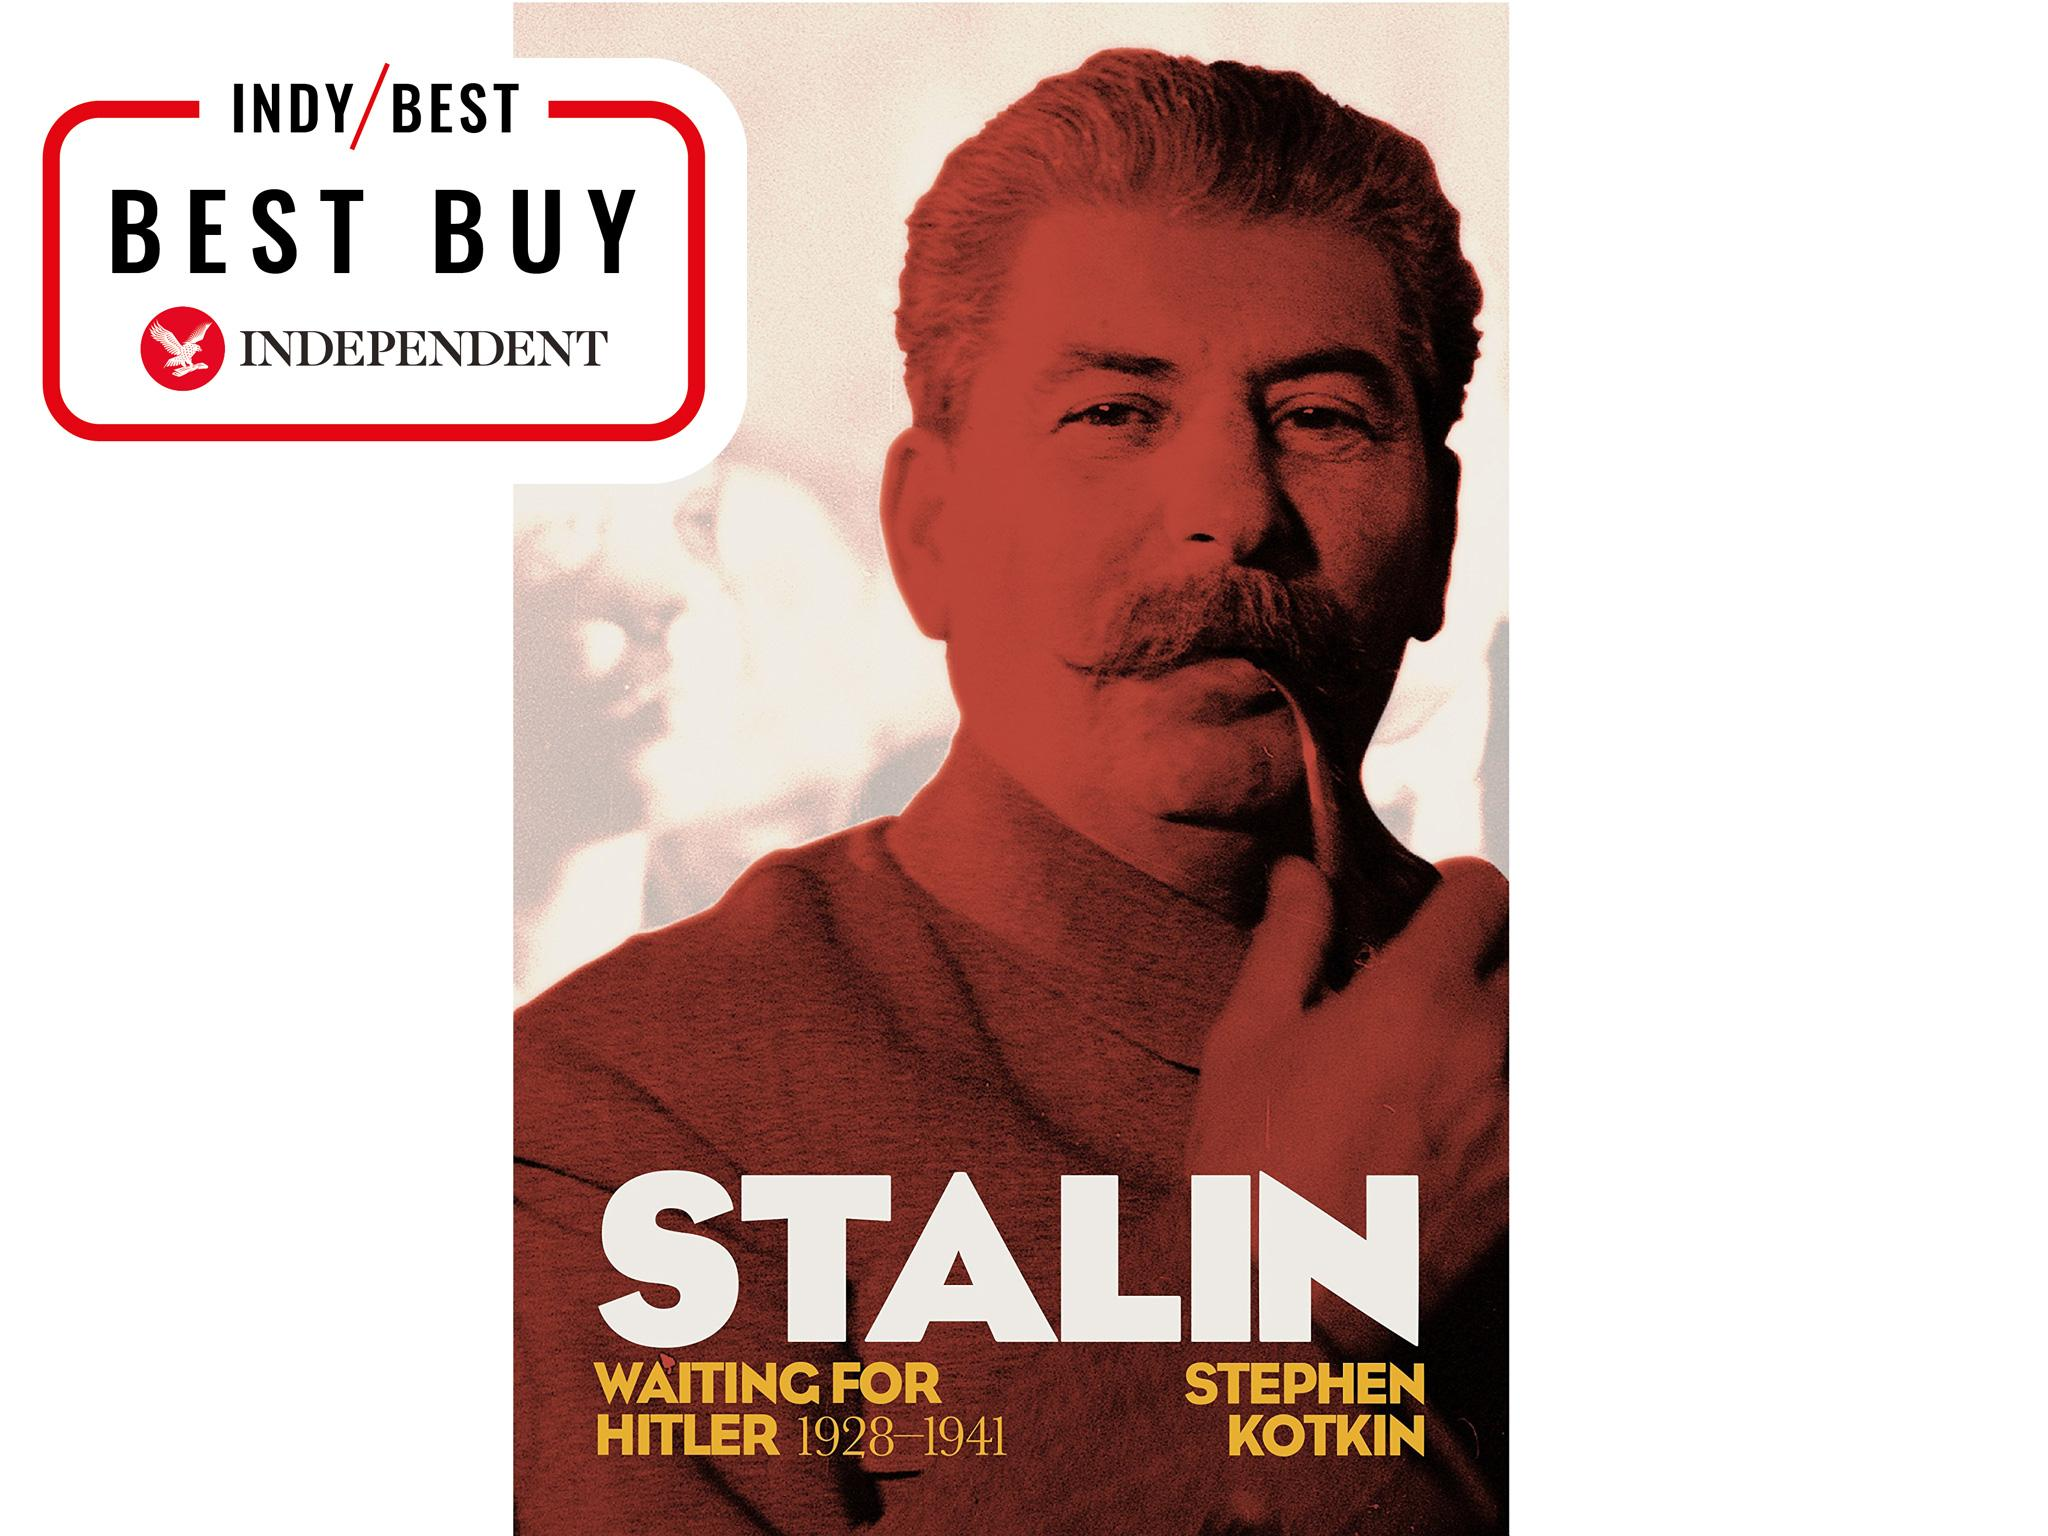 6 best russian history books the independent stalin vol ii waiting for hitler 1928 1941 by stephen kotkin 35 allen lane fandeluxe Images